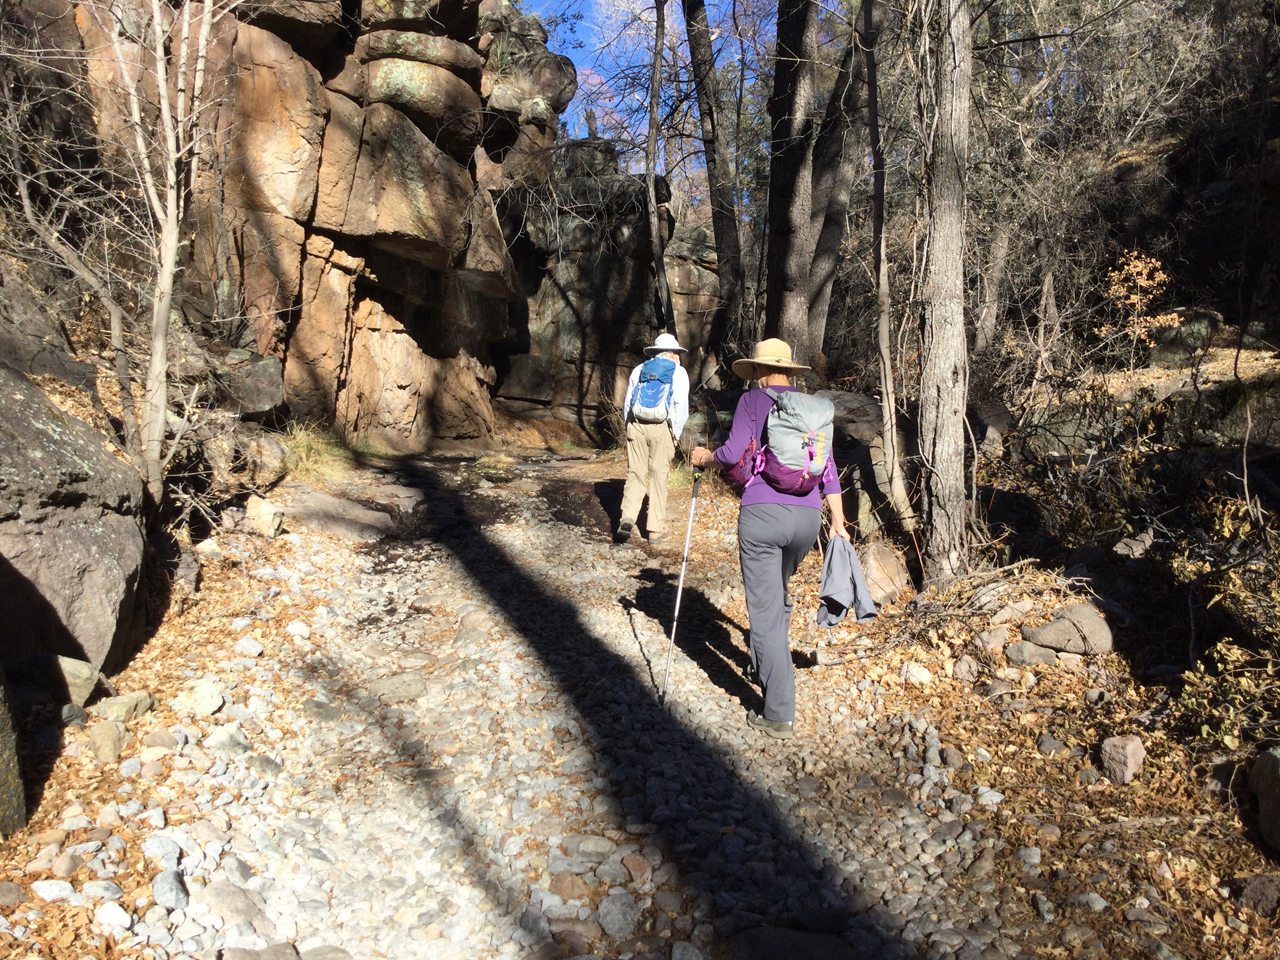 hikers in narrow canyon